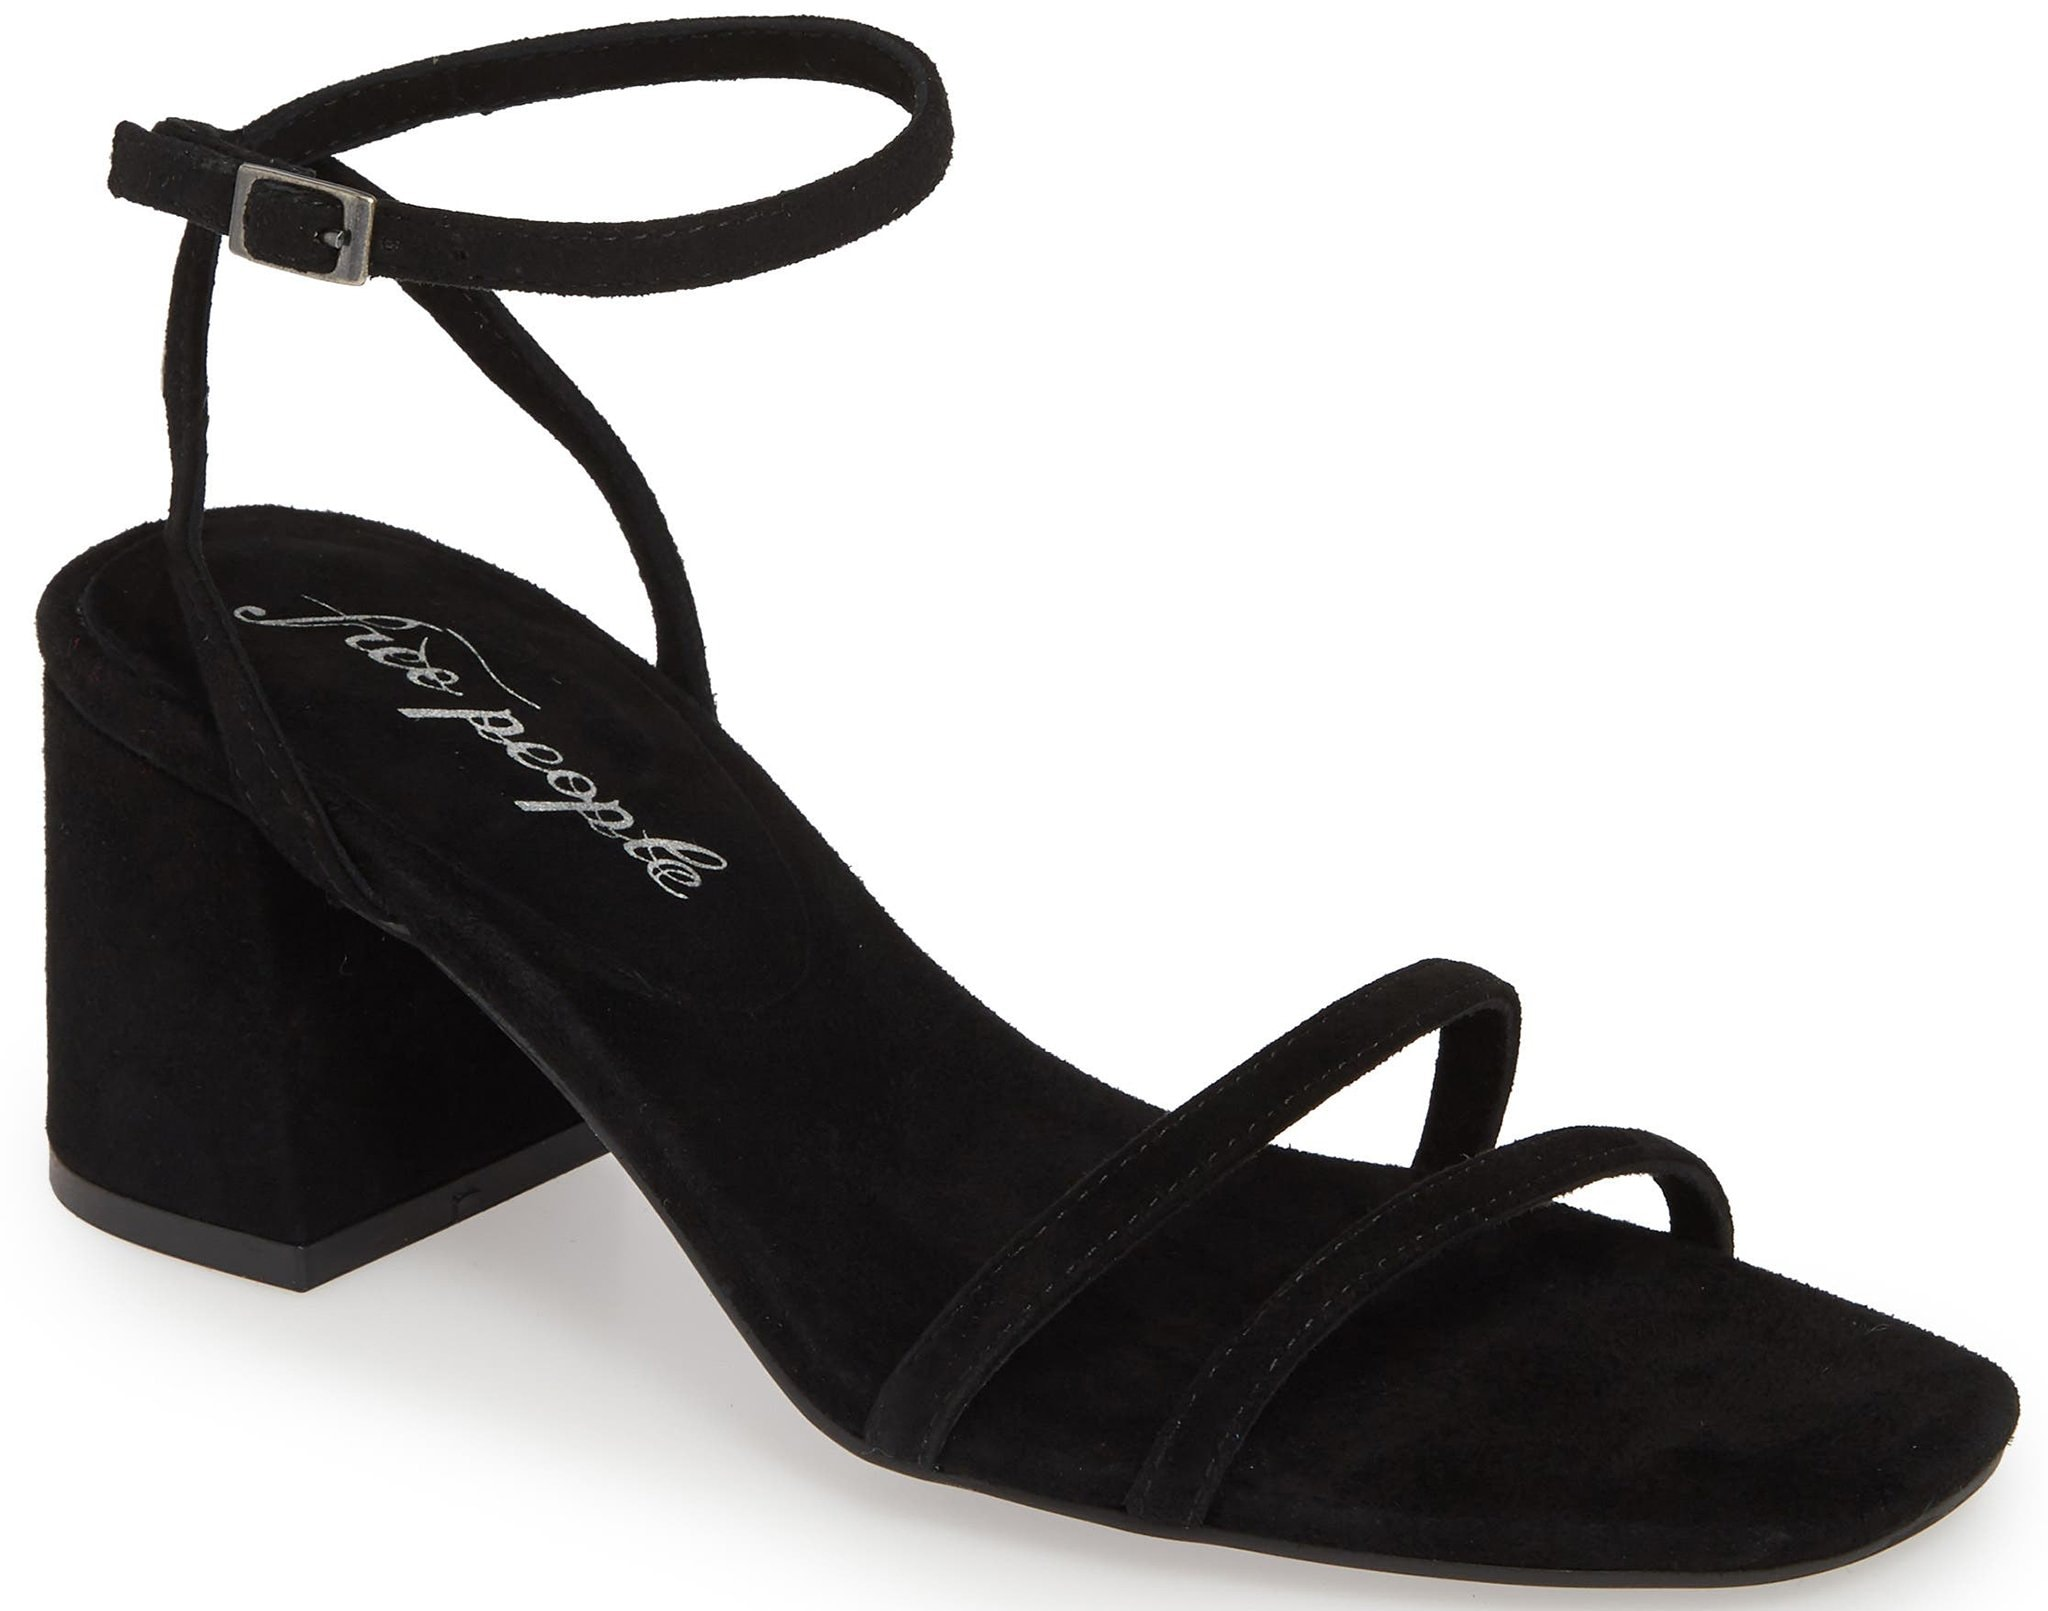 Free People's Gabby has short block heels and a strappy upper made of suede